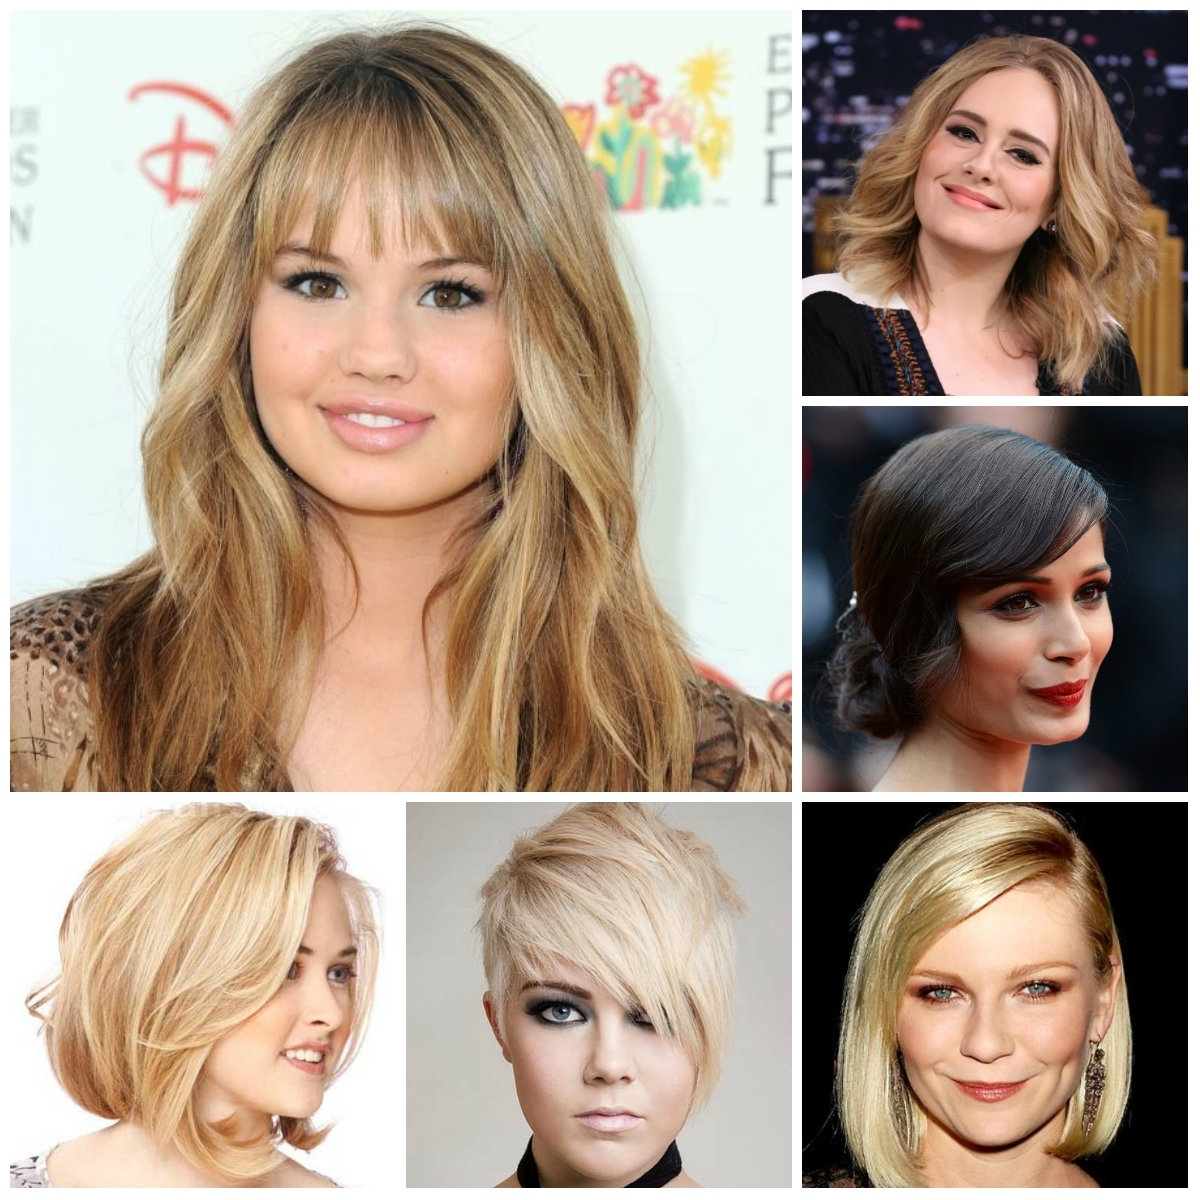 Medium Hairstyles For Chubby Faces - Hairstyle For Women & Man intended for Haircut For Oval Face With Chubby Cheeks